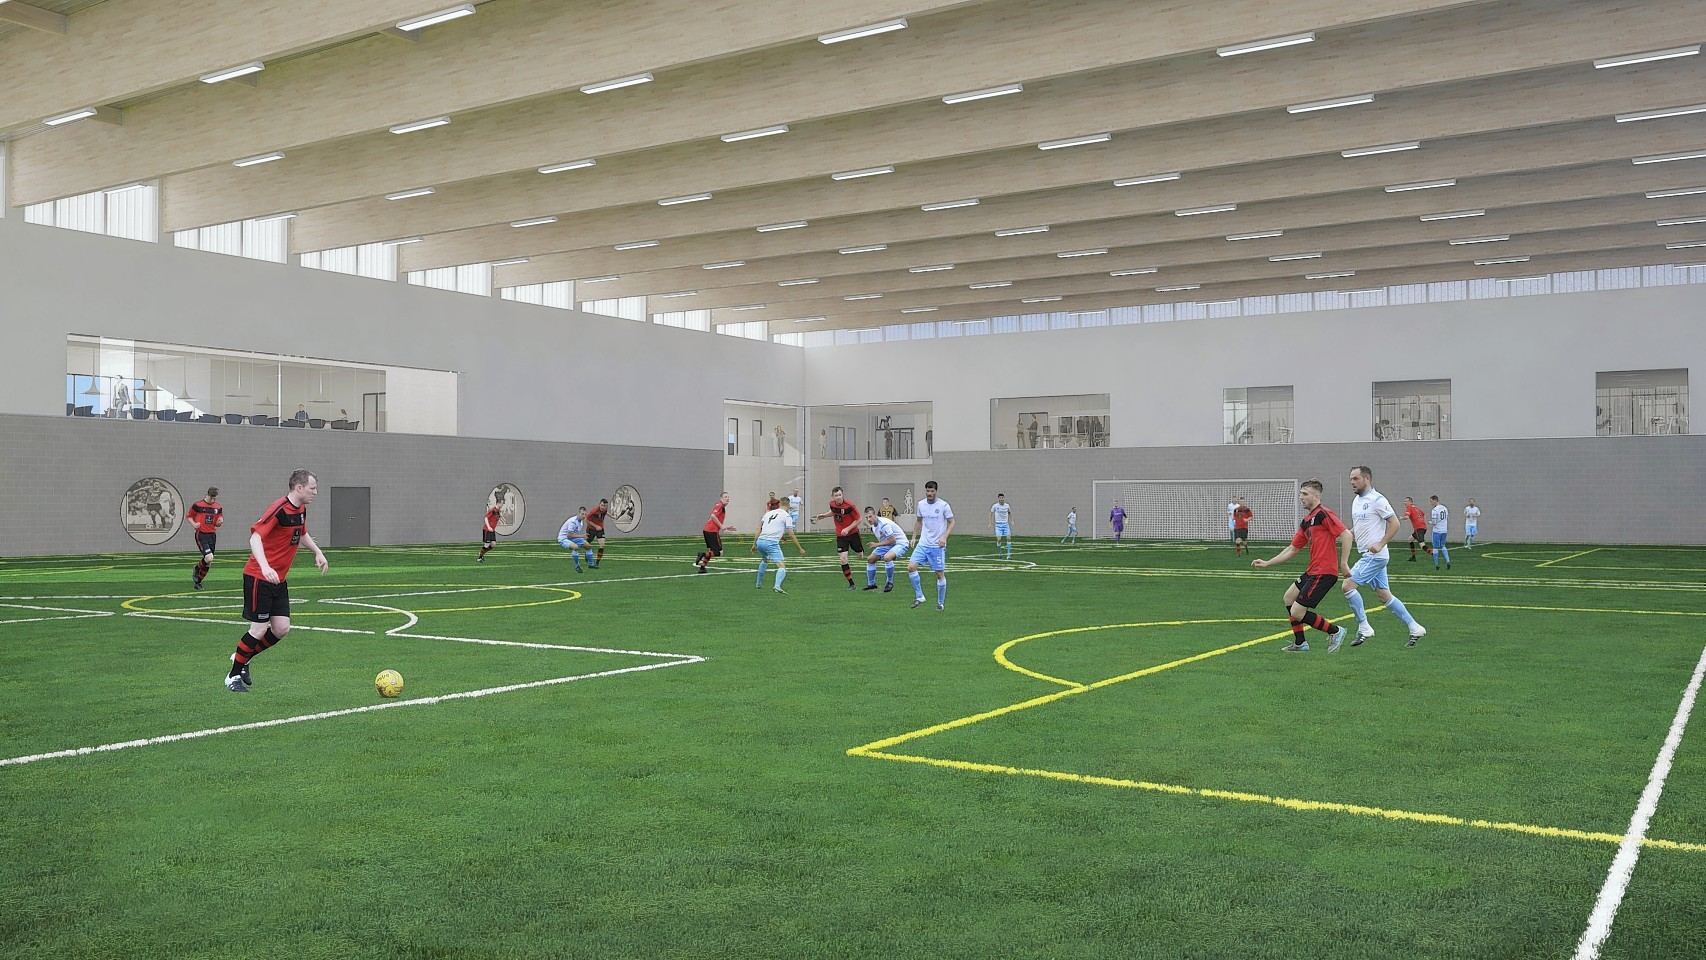 Some of the indoor pitches at the A look inside the Garioch Sports and Community Centre